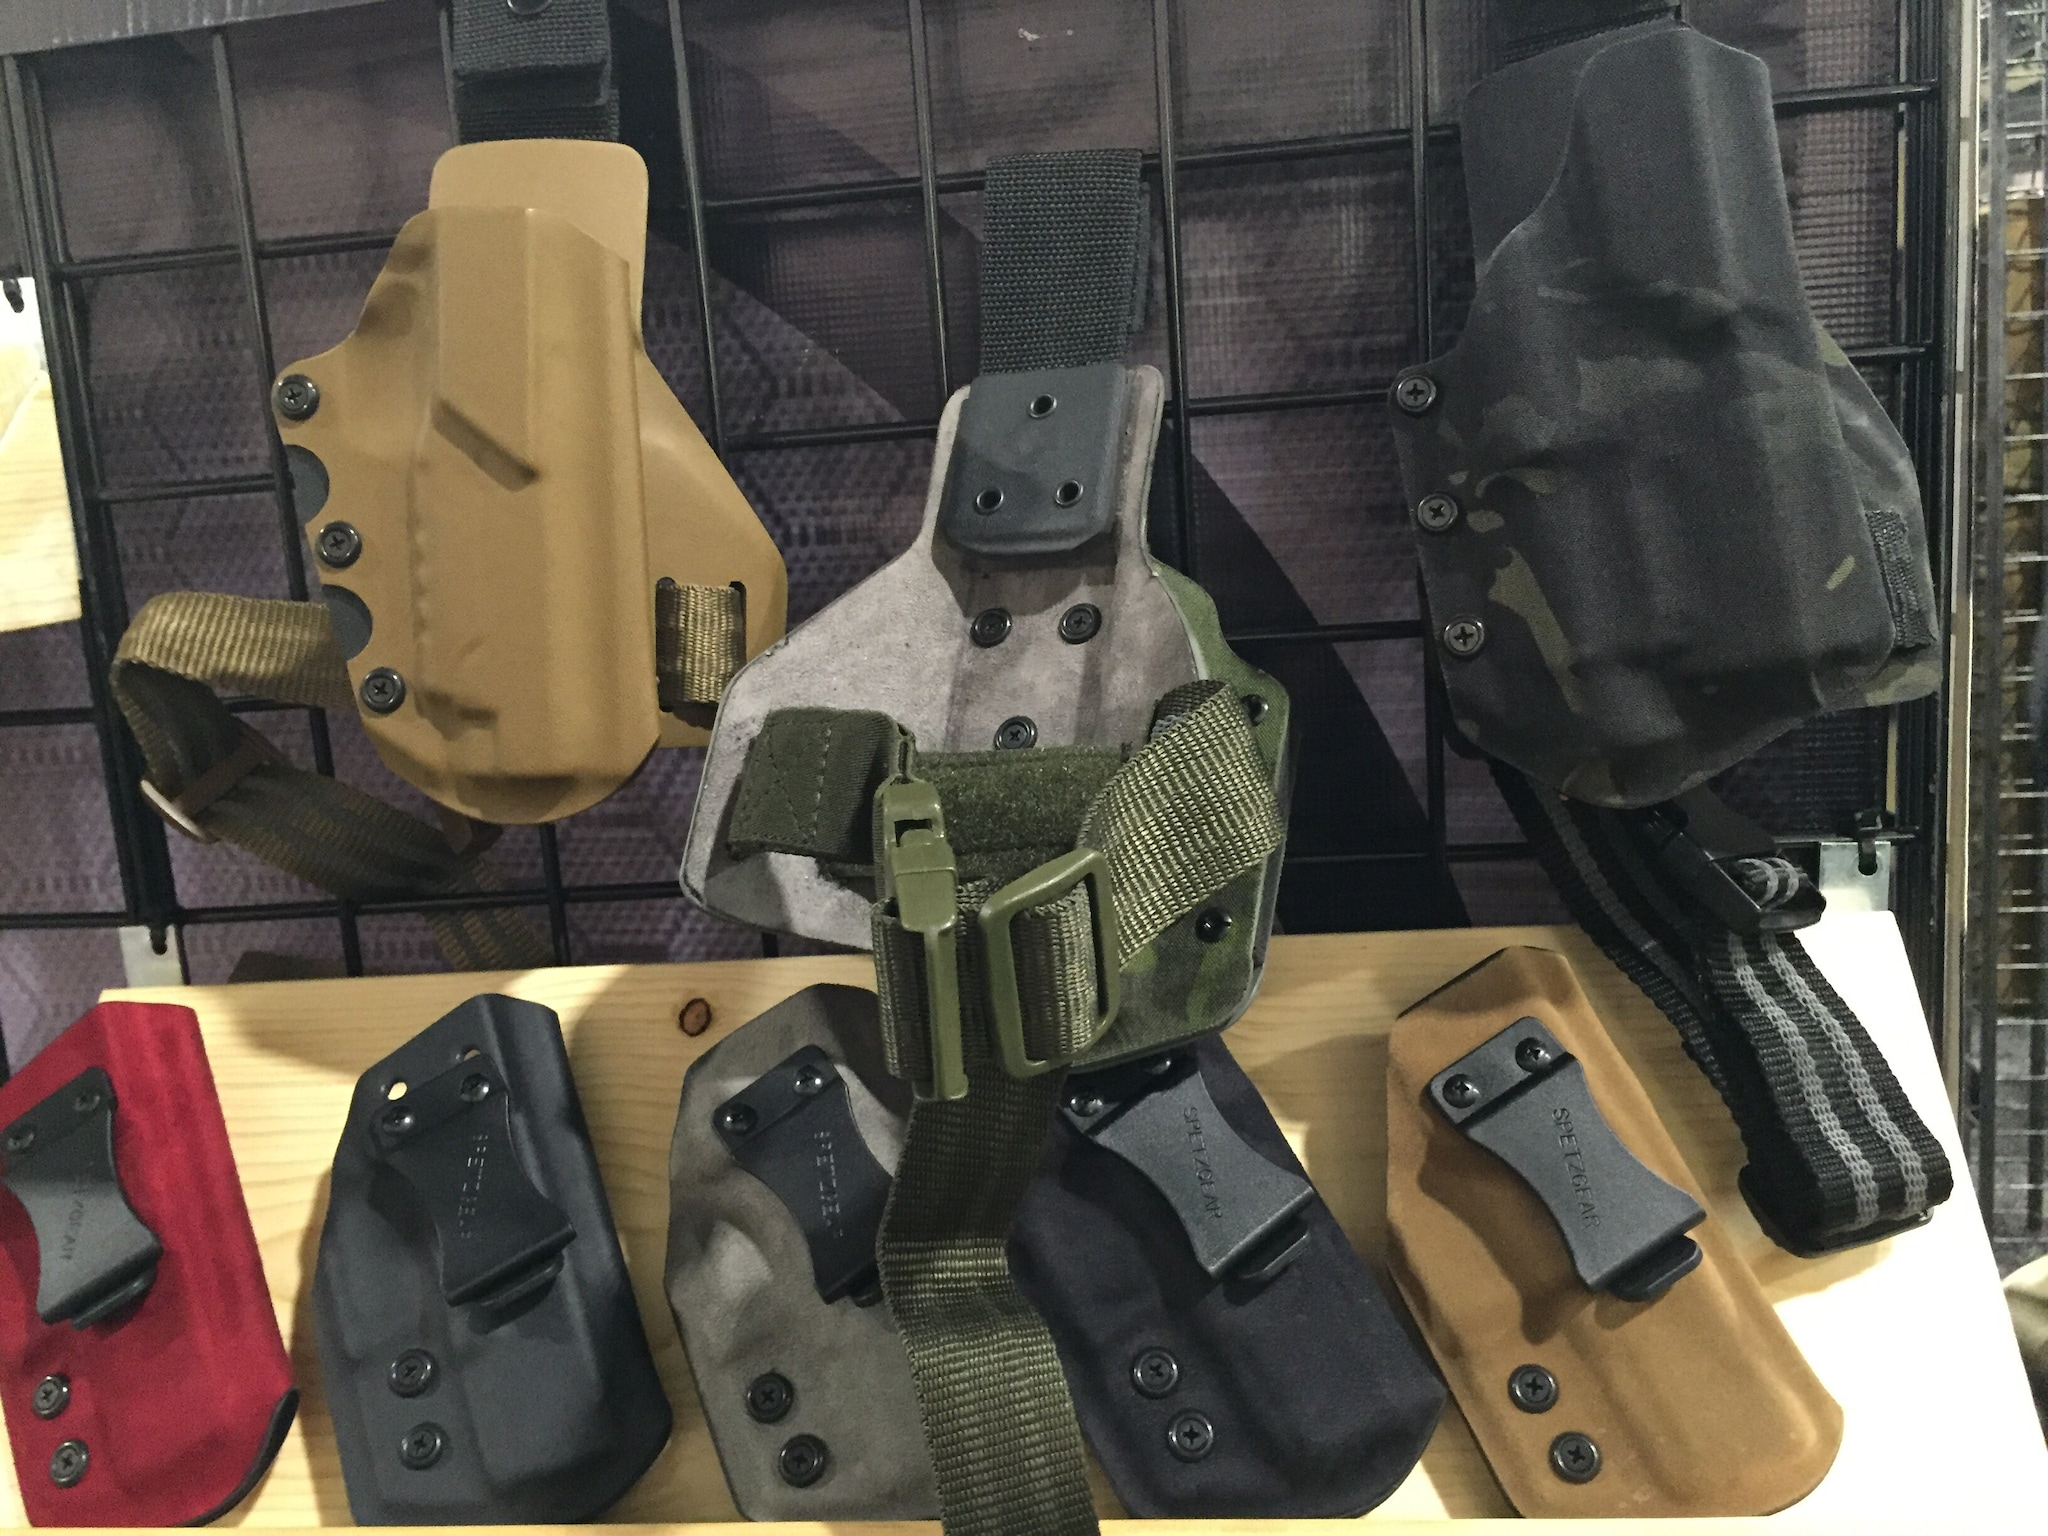 Spetzgear's thigh rigs are the choice of LAPD SWAT. The company is now making holsters in suede finish, too.